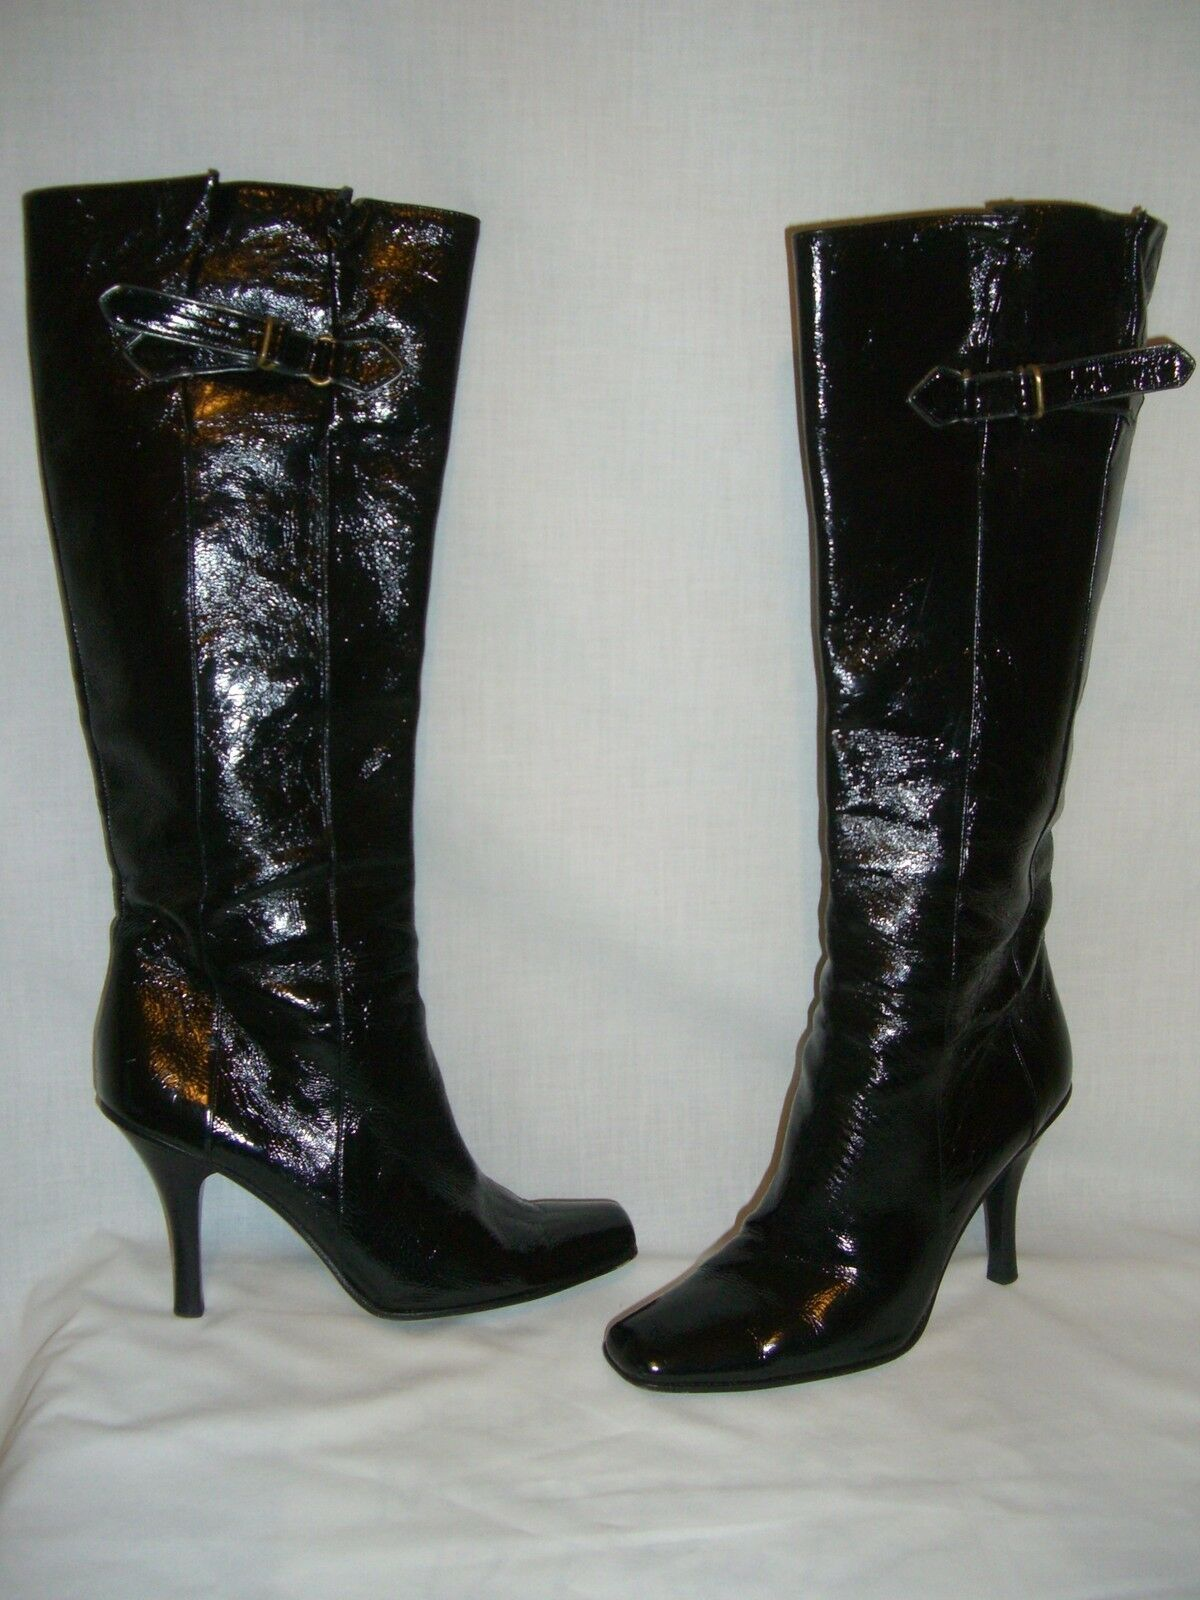 JIMMY CHOO Black Crushed Patent Leather High Heel Knee Boots 37.5 / 7.5M  - EUC